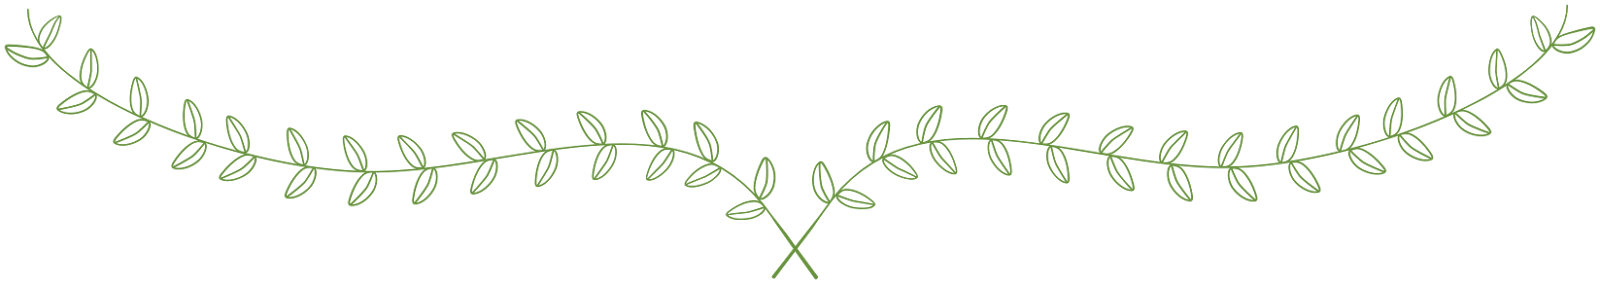 Free leaves cliparts download. Vines clipart rustic